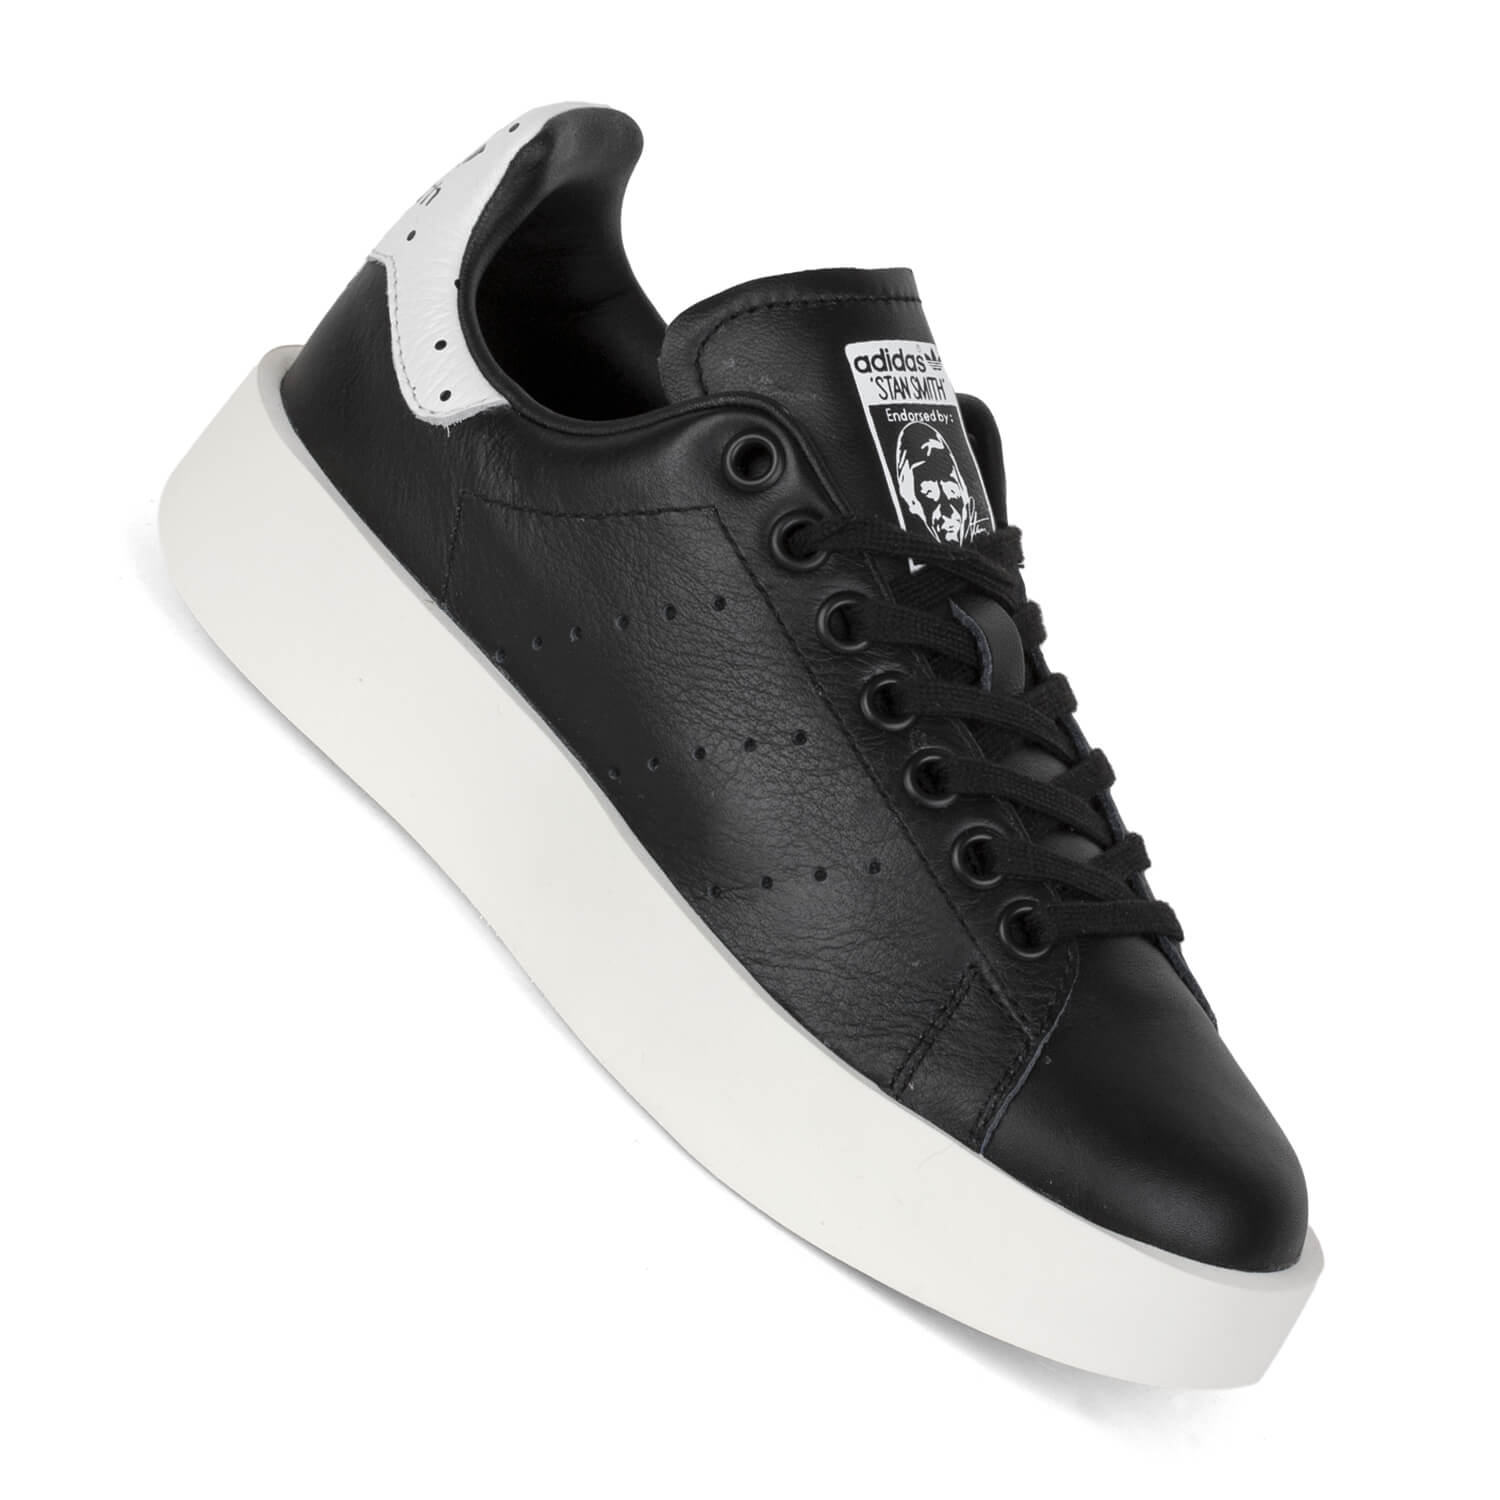 damen sneaker von adidas stan smith